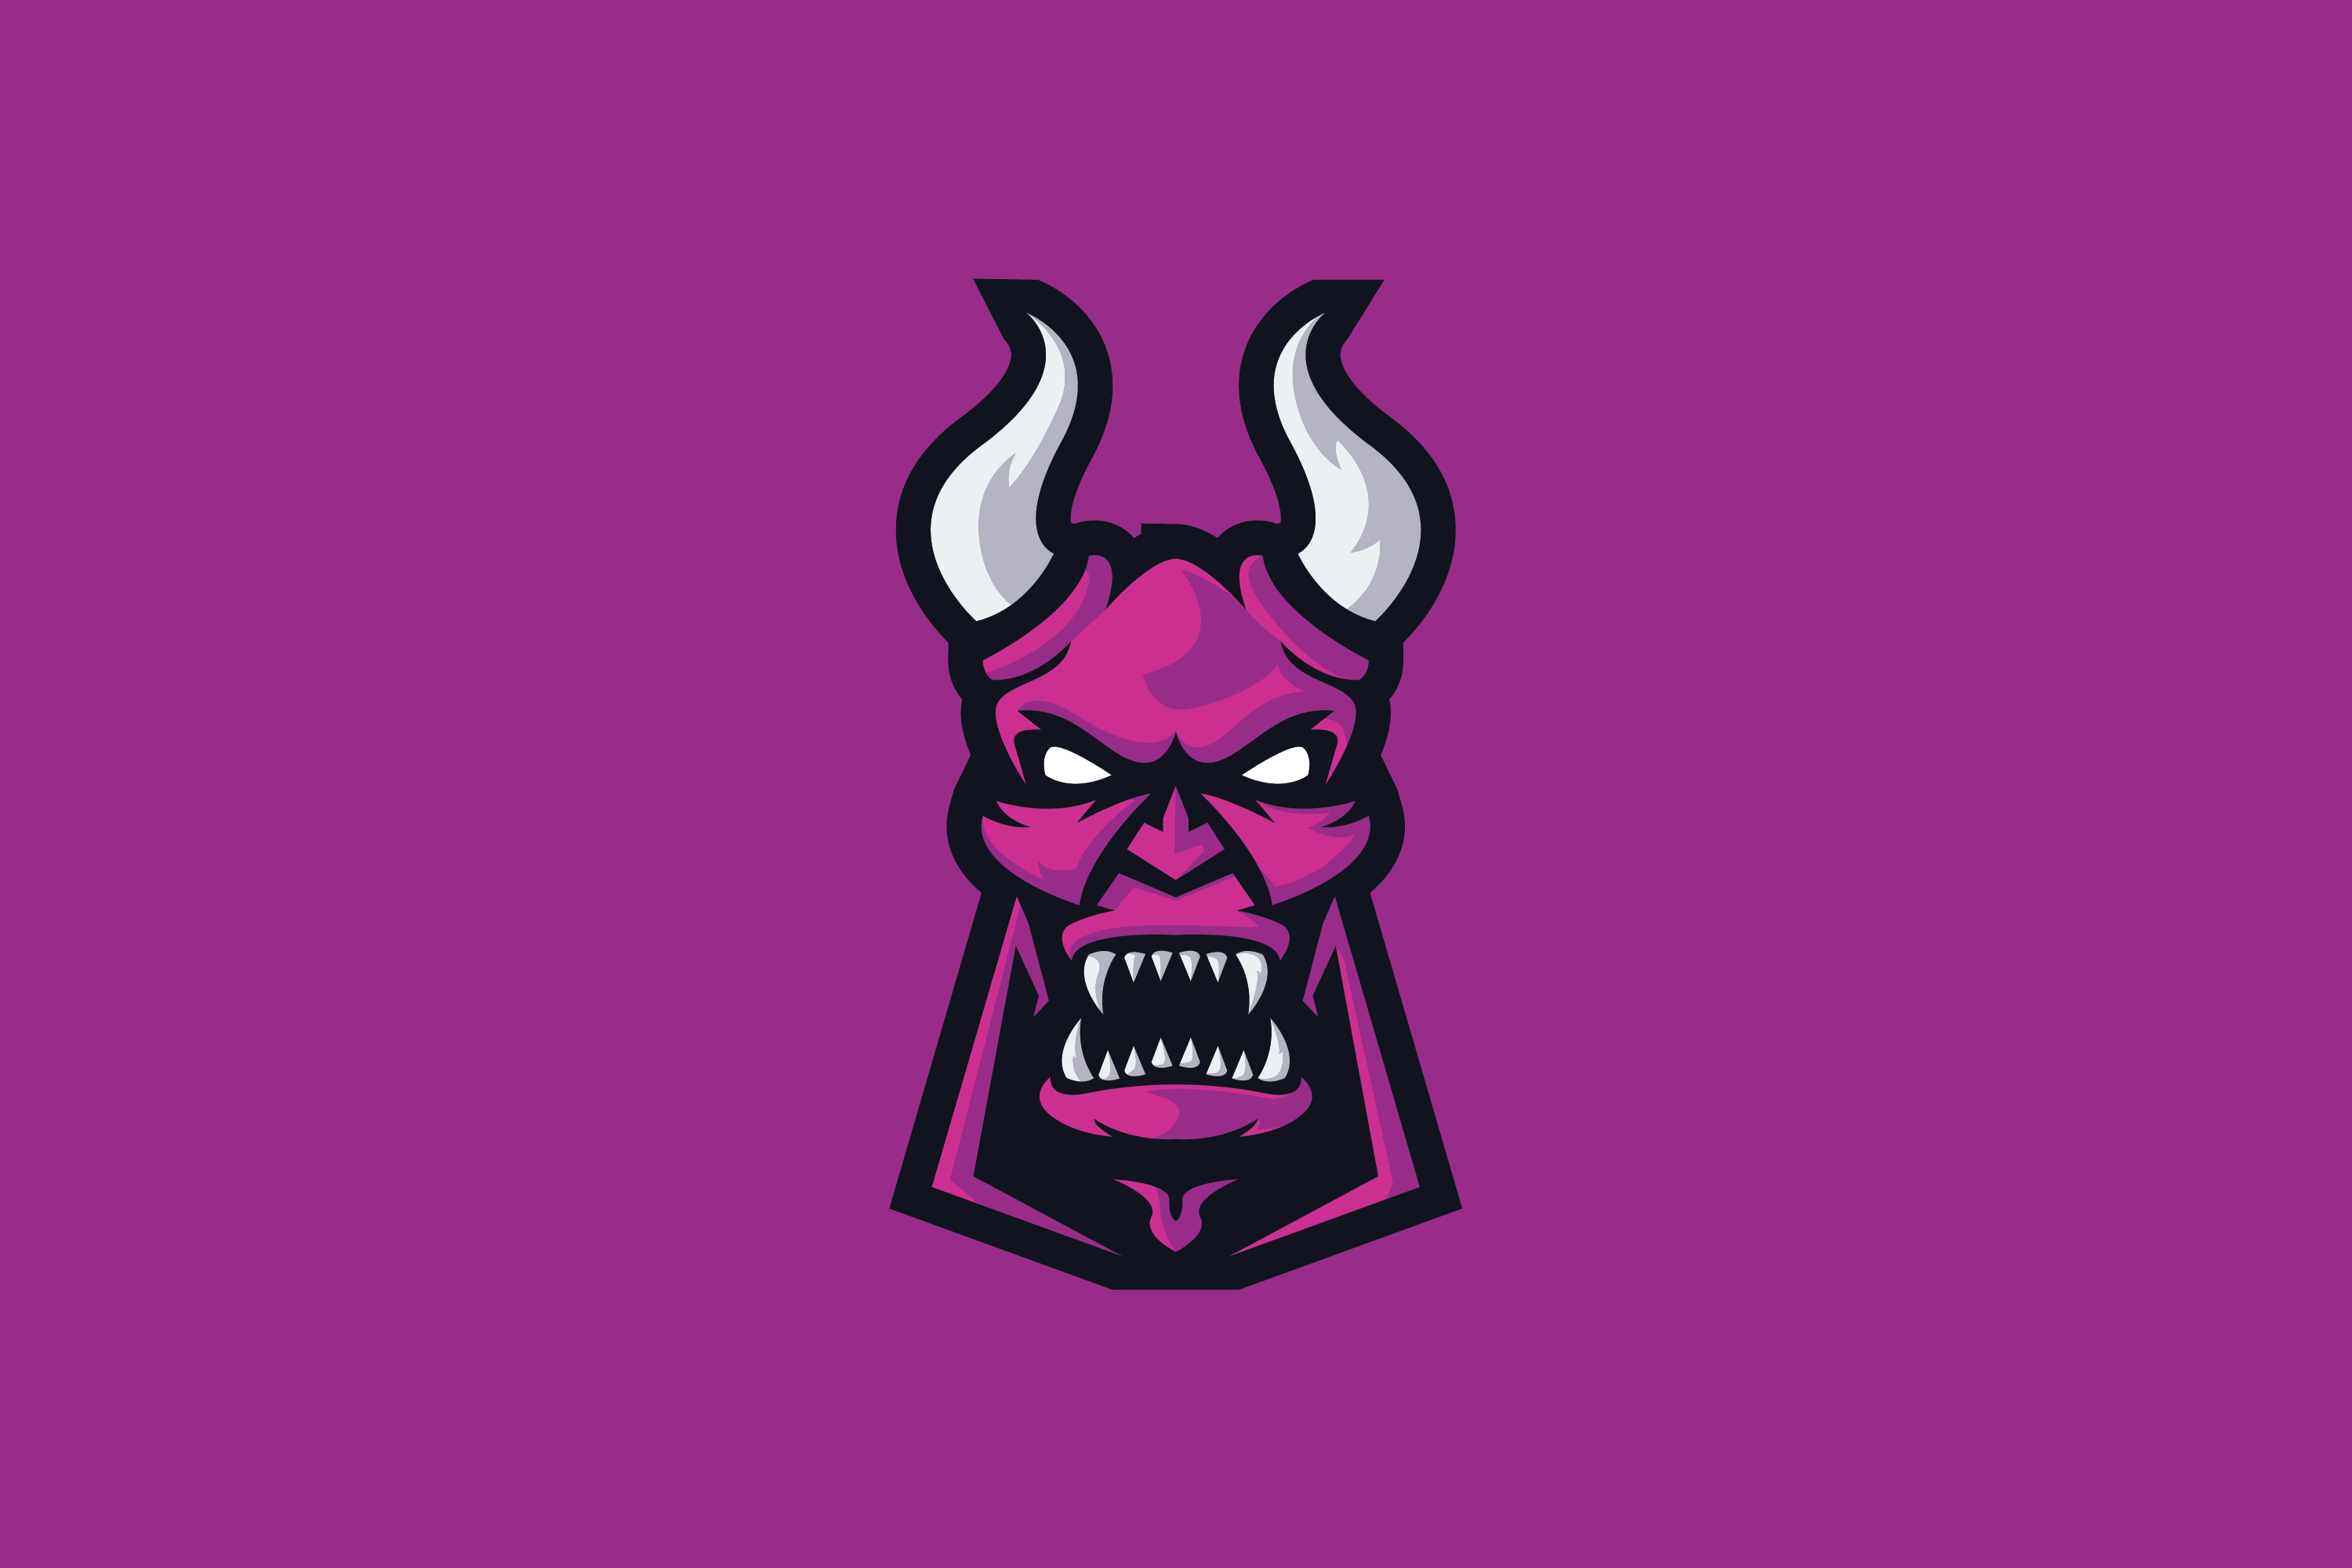 pink devil e sports logo graphic by ovoz graphics creative fabrica pink devil e sports logo